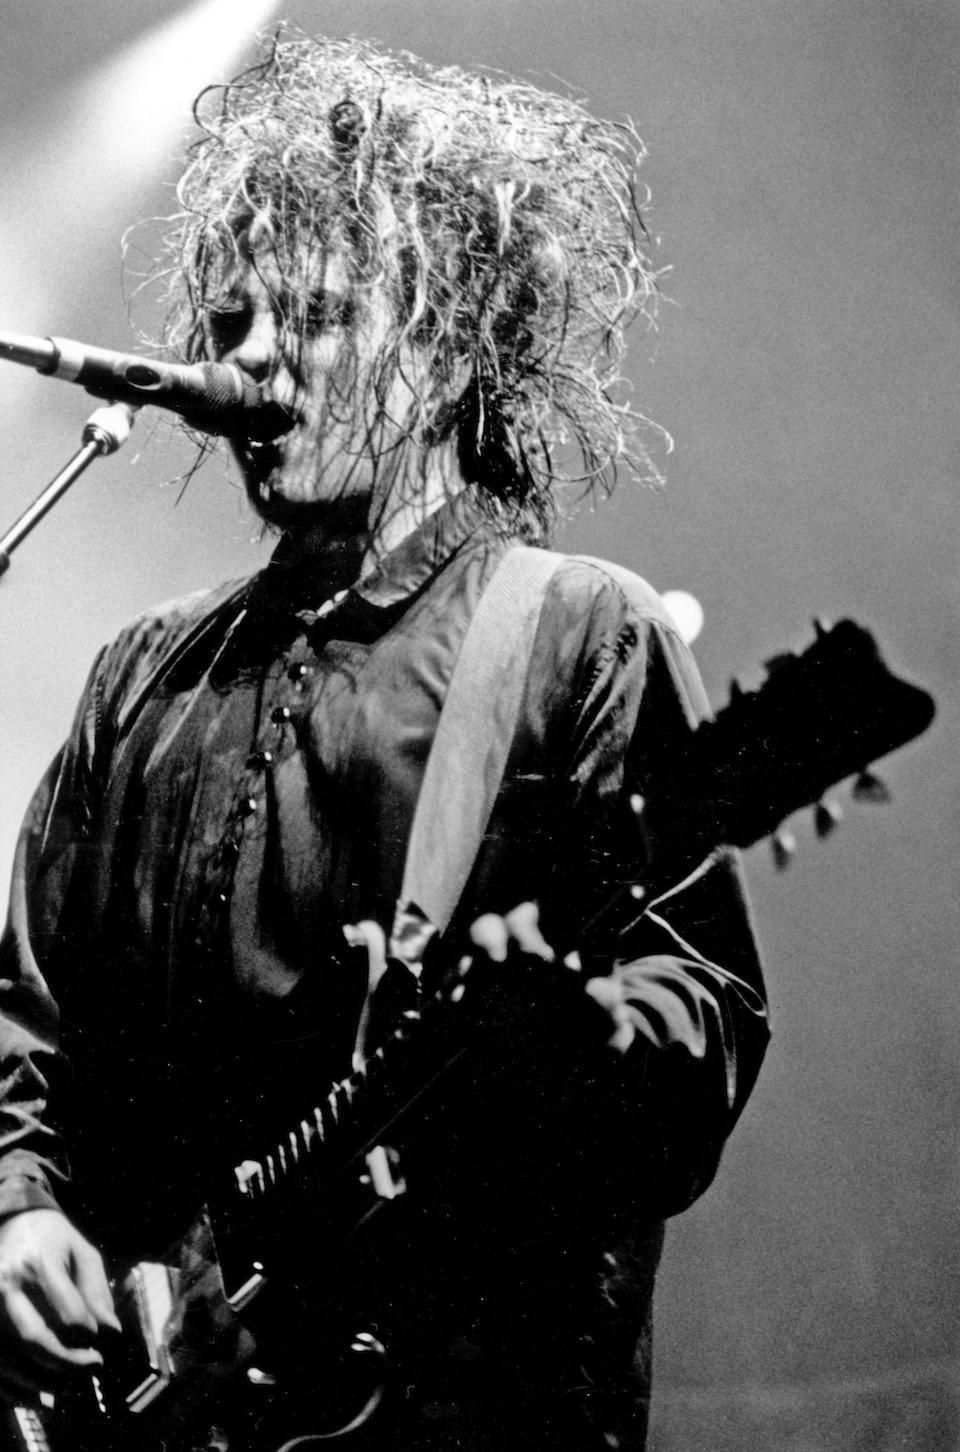 The Cure/Robert Smith: a hand-made shirt worn by Robert Smith during the band's 'Prayer Tour' in 1989 and the 'Disintegration' shows at Sydney Opera House in 2019, 1989-2019,